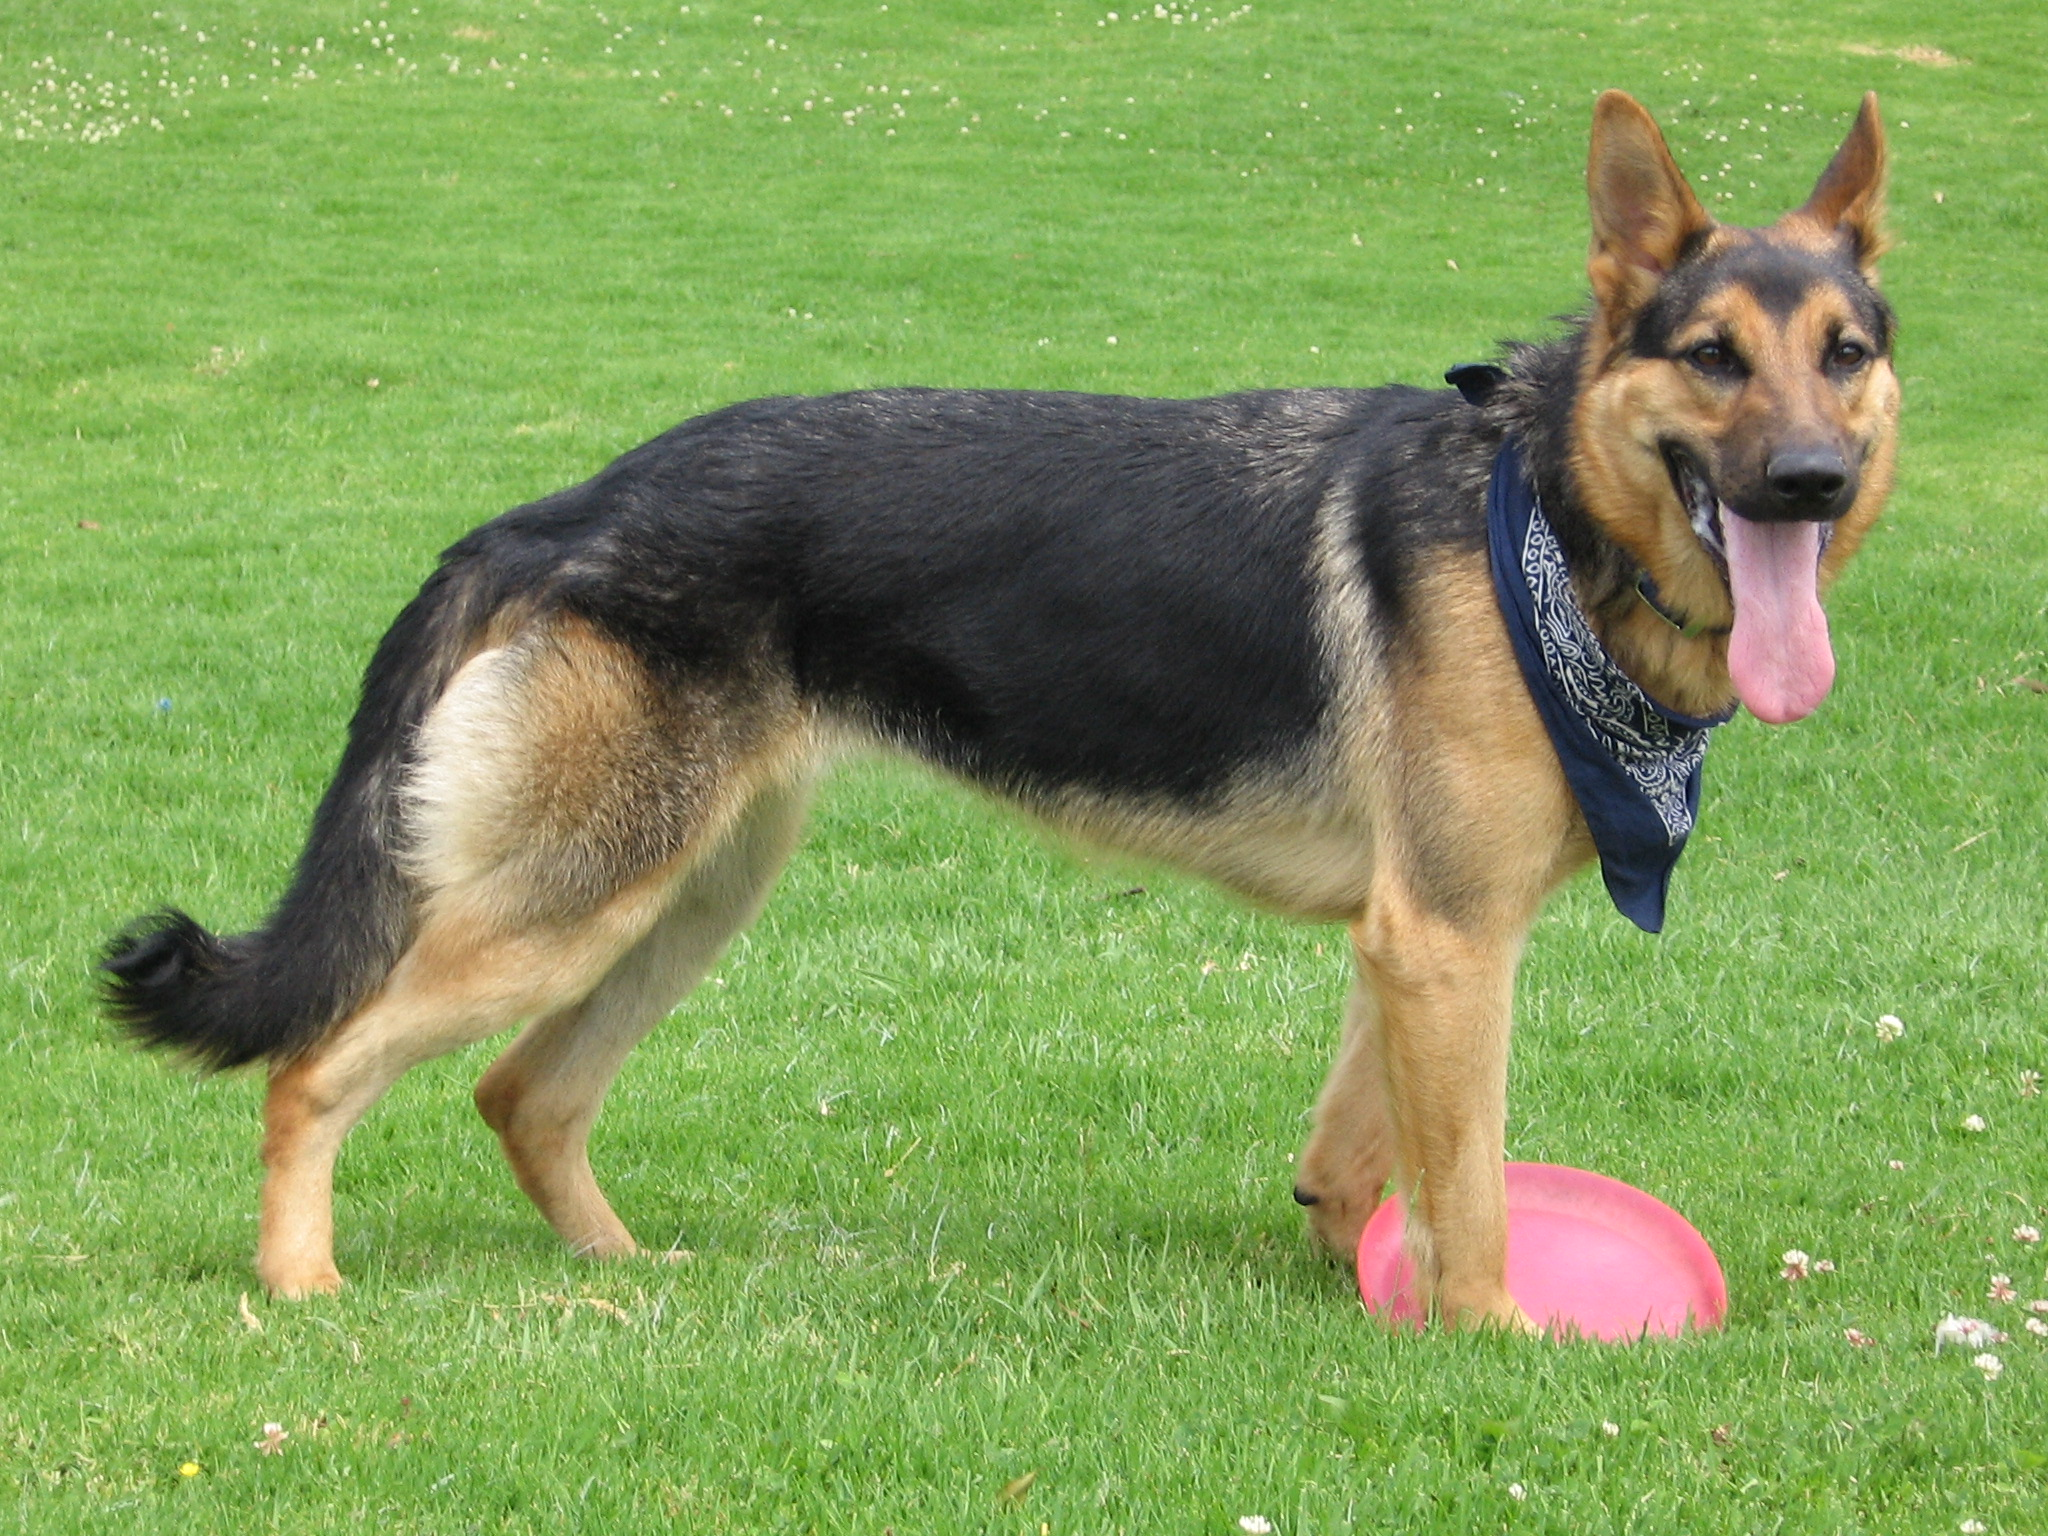 File:German Shepherd Dog with disc.jpg - Wikimedia Commons